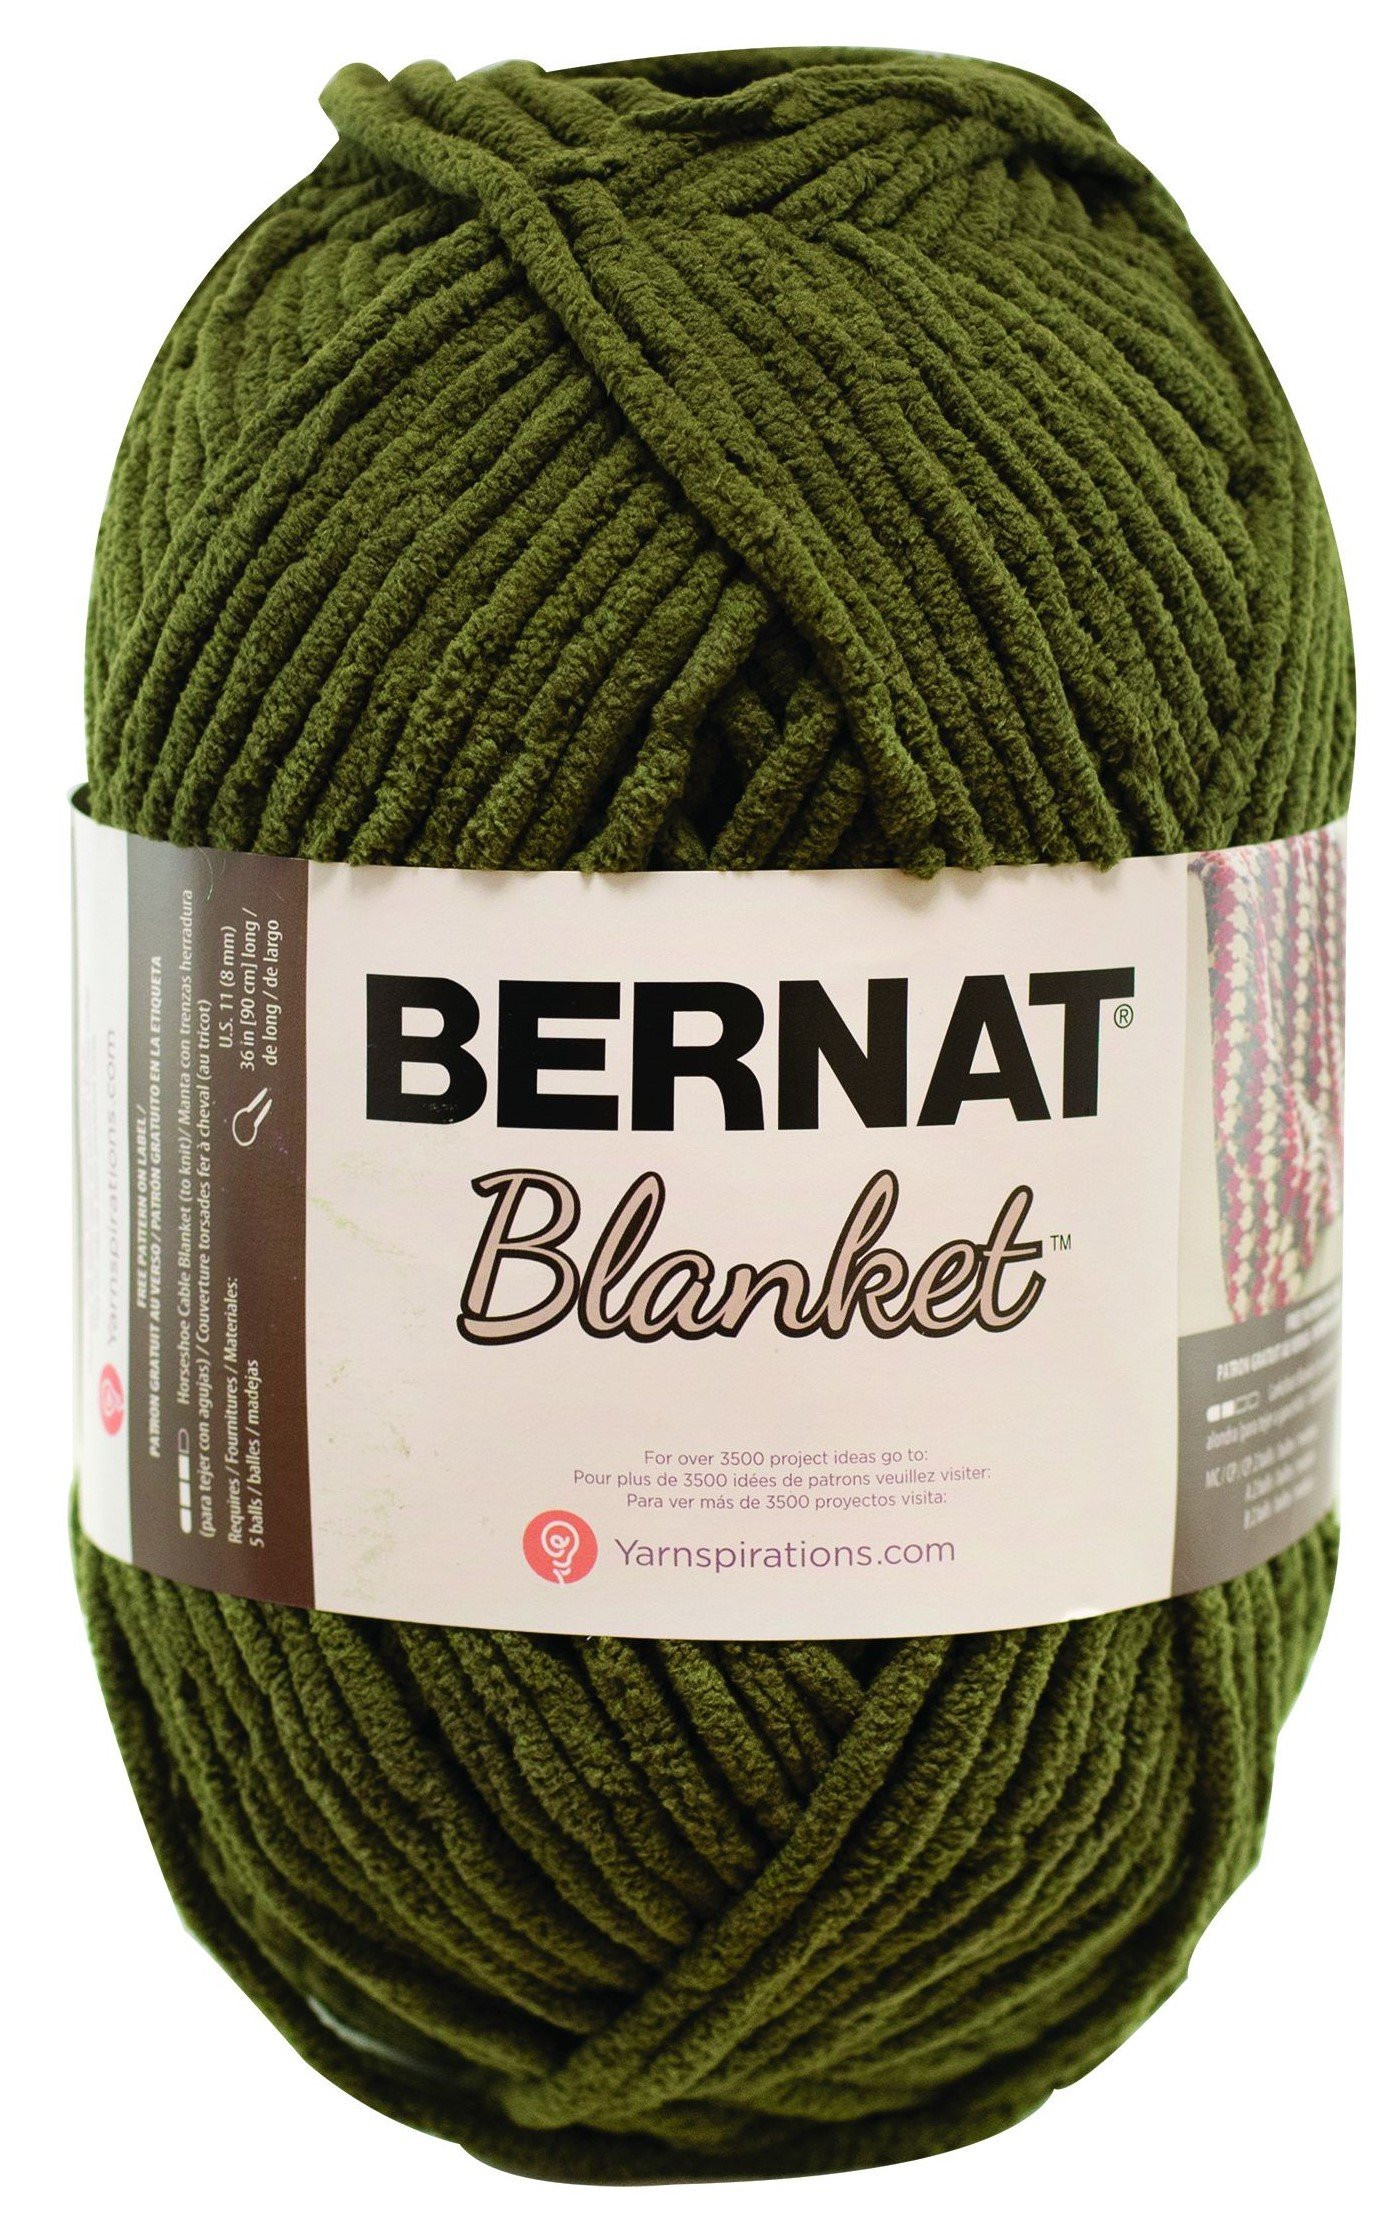 Bernat Chunky Yarn Big Ball Luxury Bernat Blanket Yarn 10 5 Ounce Olive Single Ball Big Ball Of Top 43 Pictures Bernat Chunky Yarn Big Ball